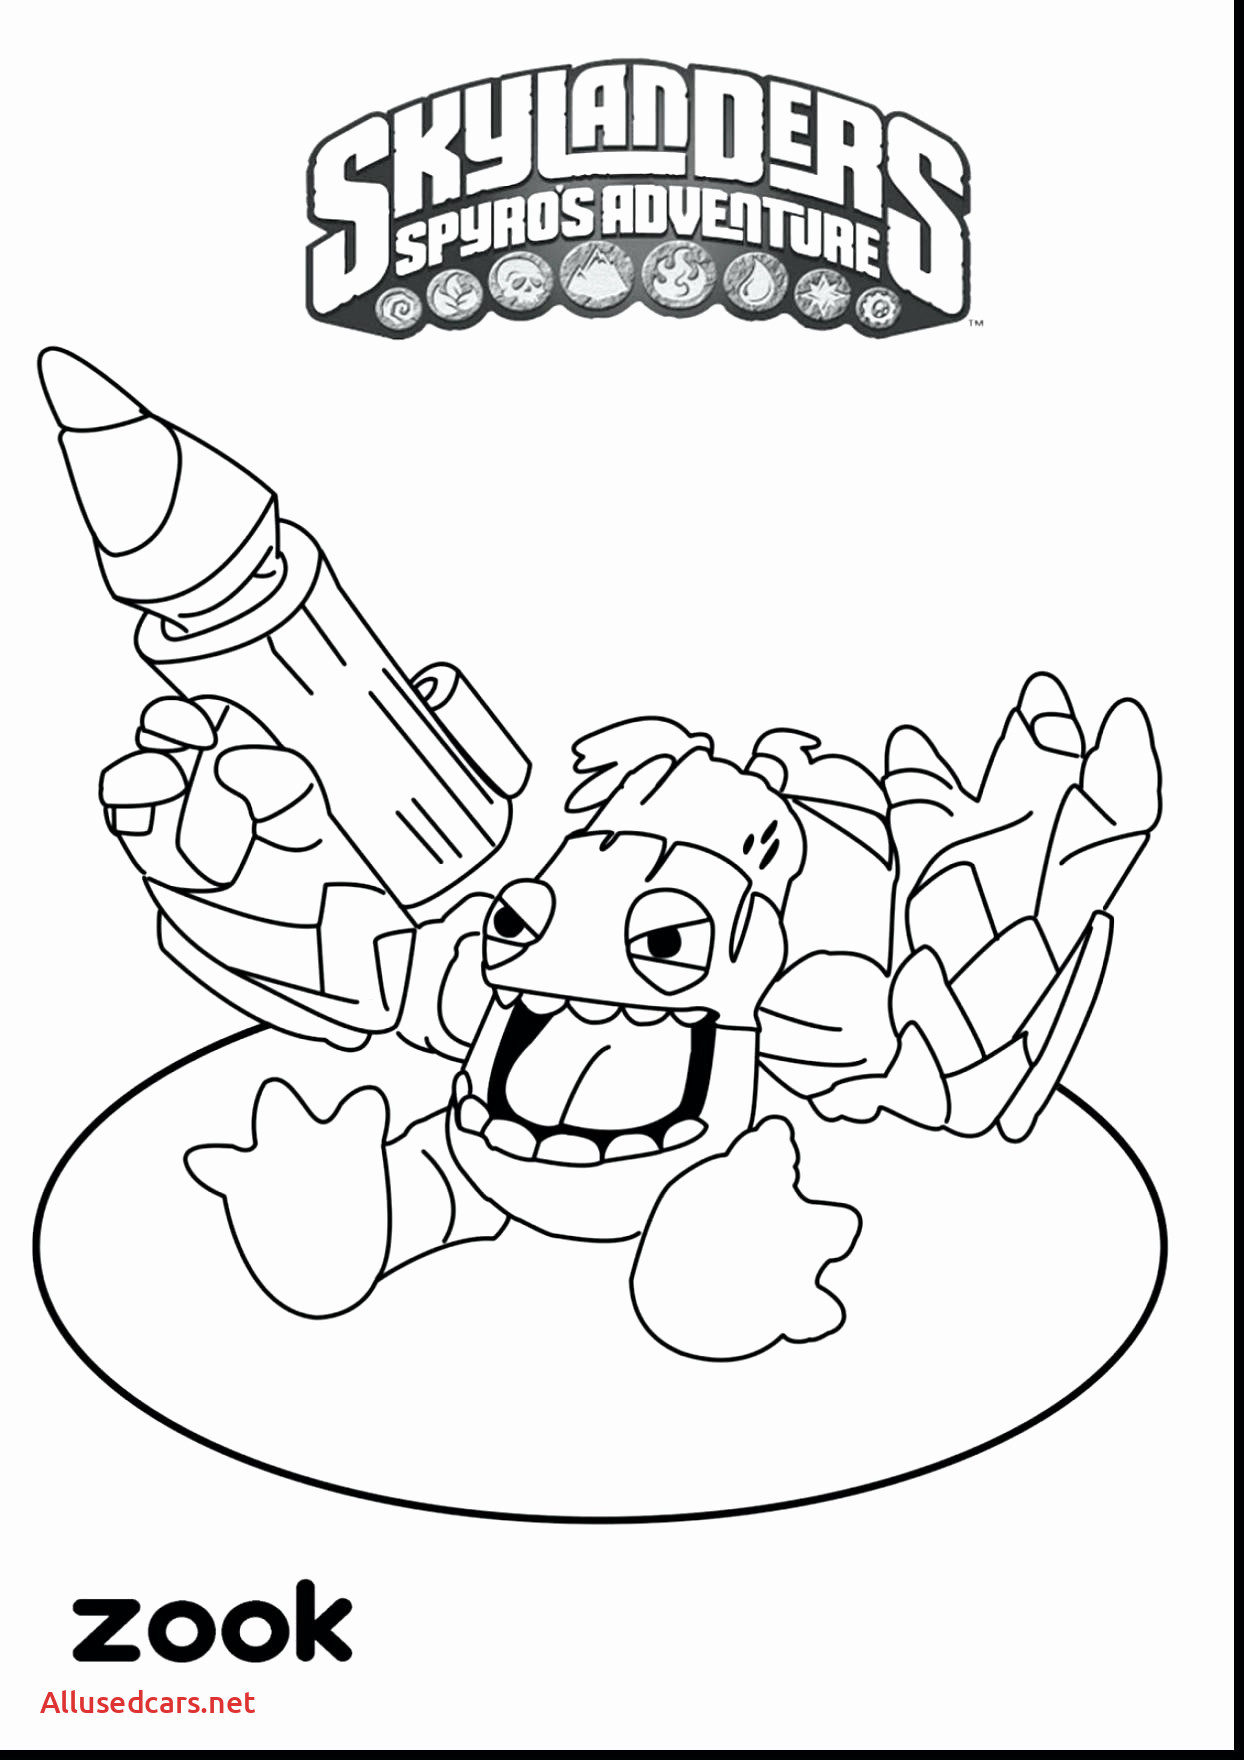 2009 Chevy Malibu Lovely Wandering Albatross In Flight Coloring Page Auto